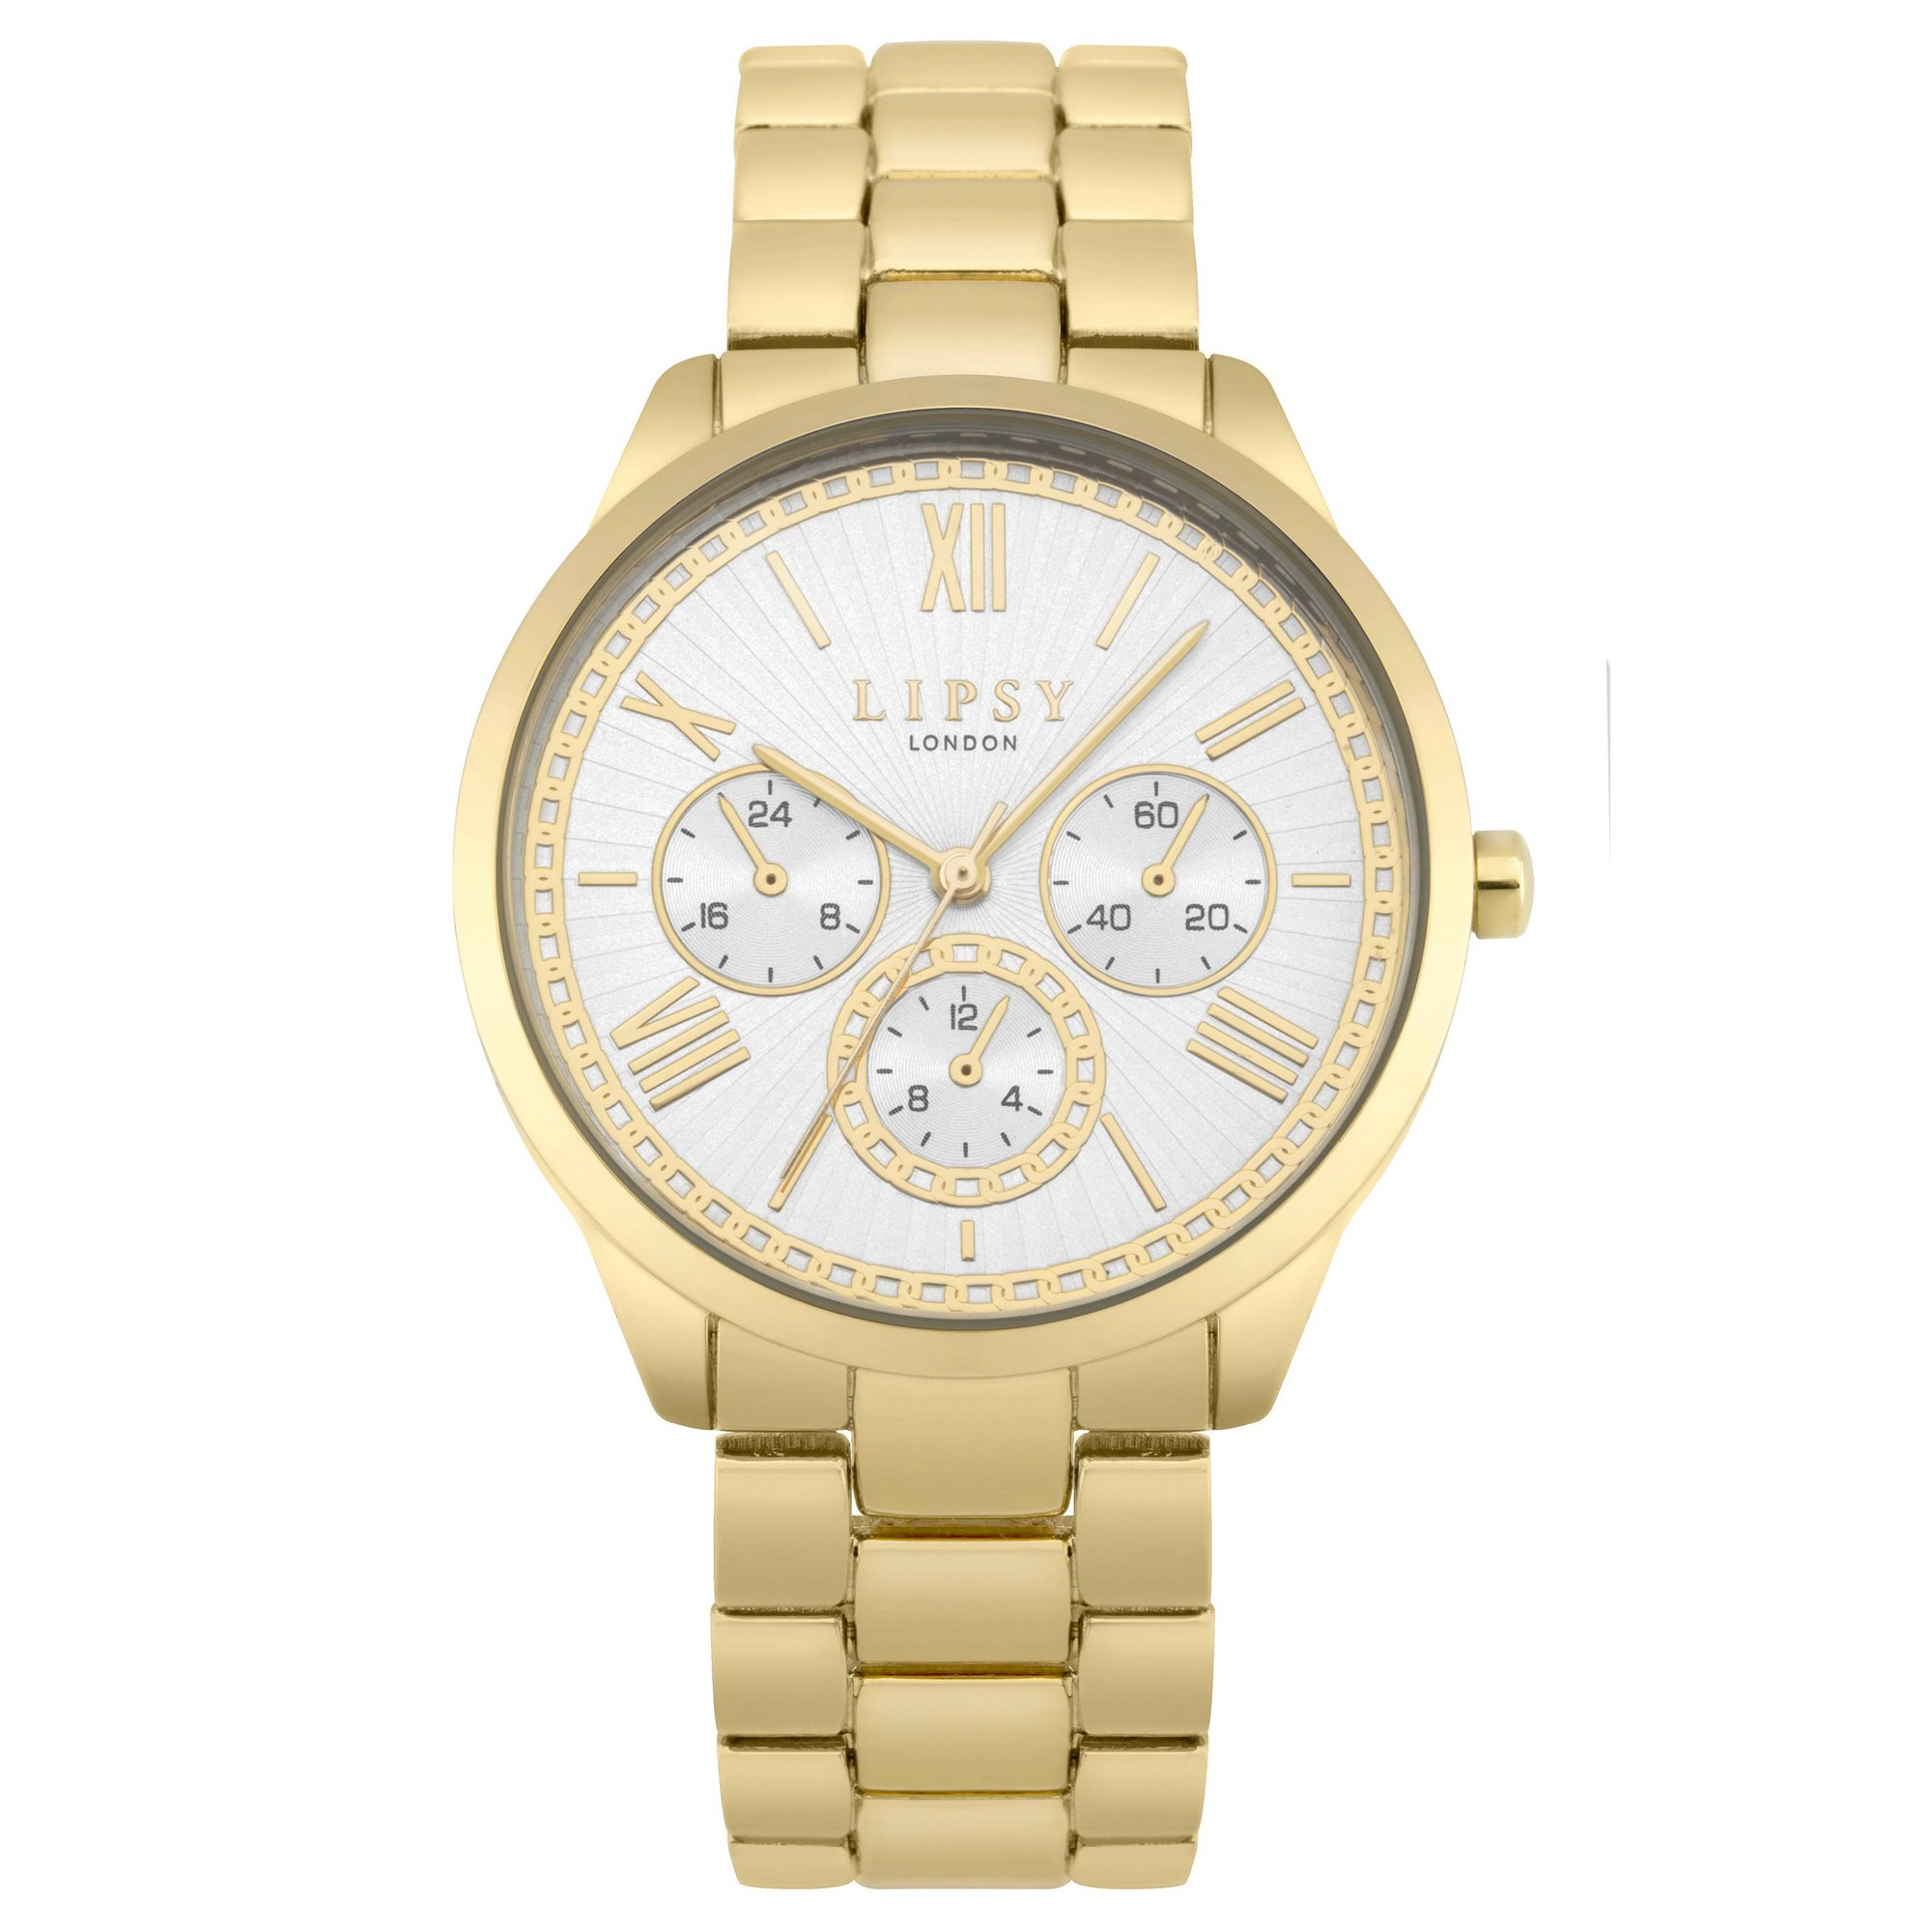 Image of Lipsy Gold Bracelet Watch with White Dial